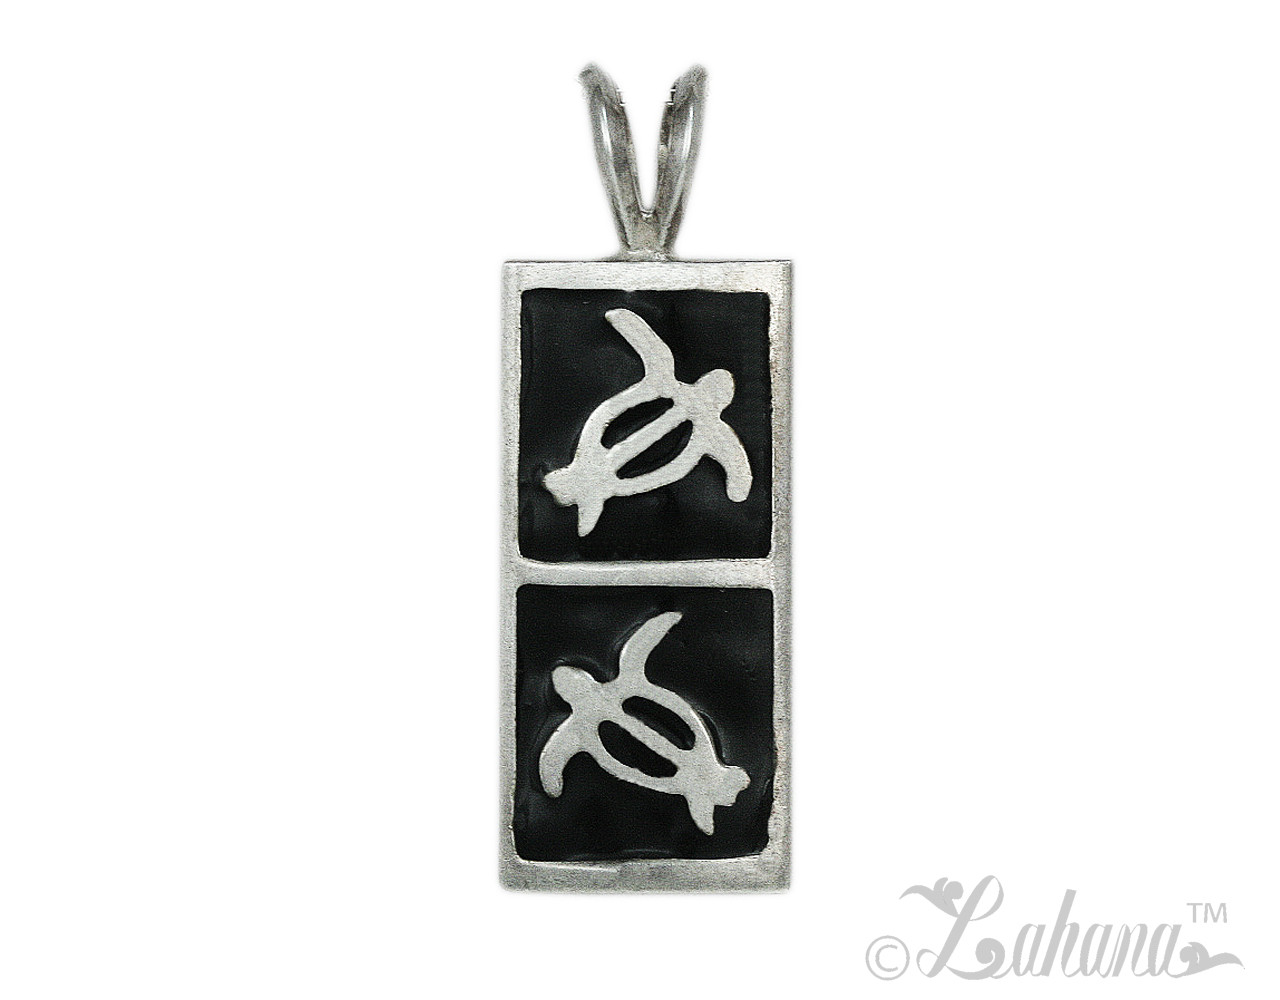 12mm silhouette collection 2 petro honu pendant 12mm silhouette collection 2x petro honu pendant aloadofball Images